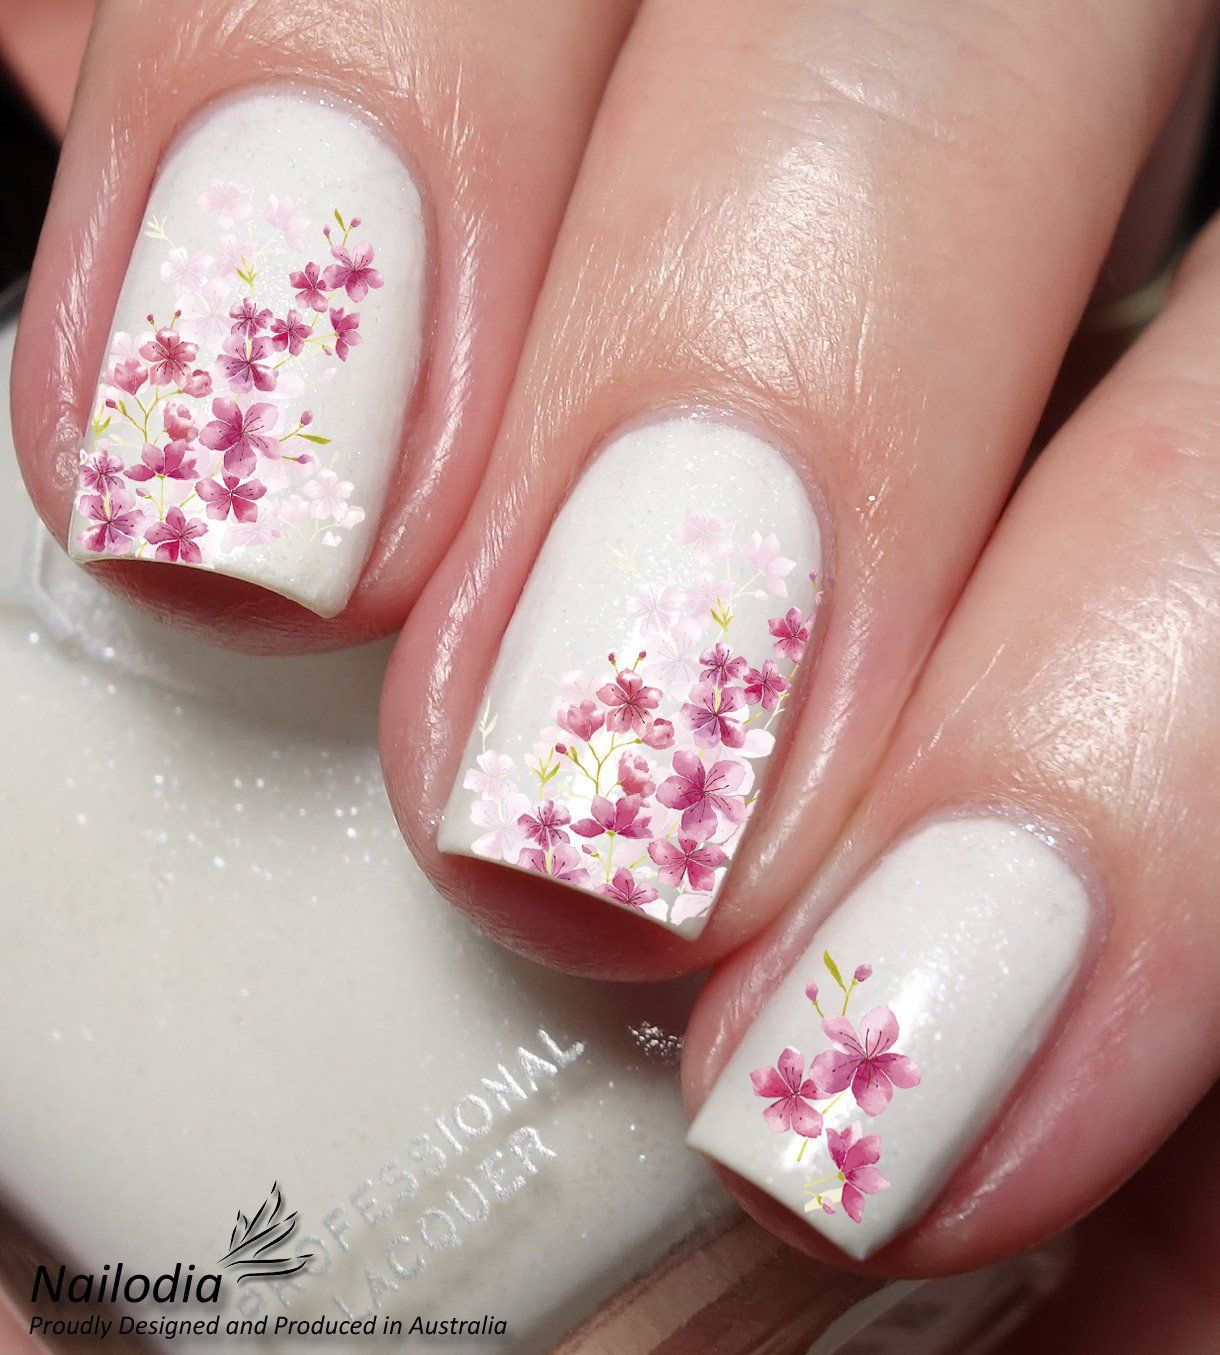 Cherry Blossom Flower Nail Art Sticker Water Transfer Decal By Nailodia On Etsy Cherry Blossom Nails Art Cherry Blossom Nails Cherry Blossom Nails Design